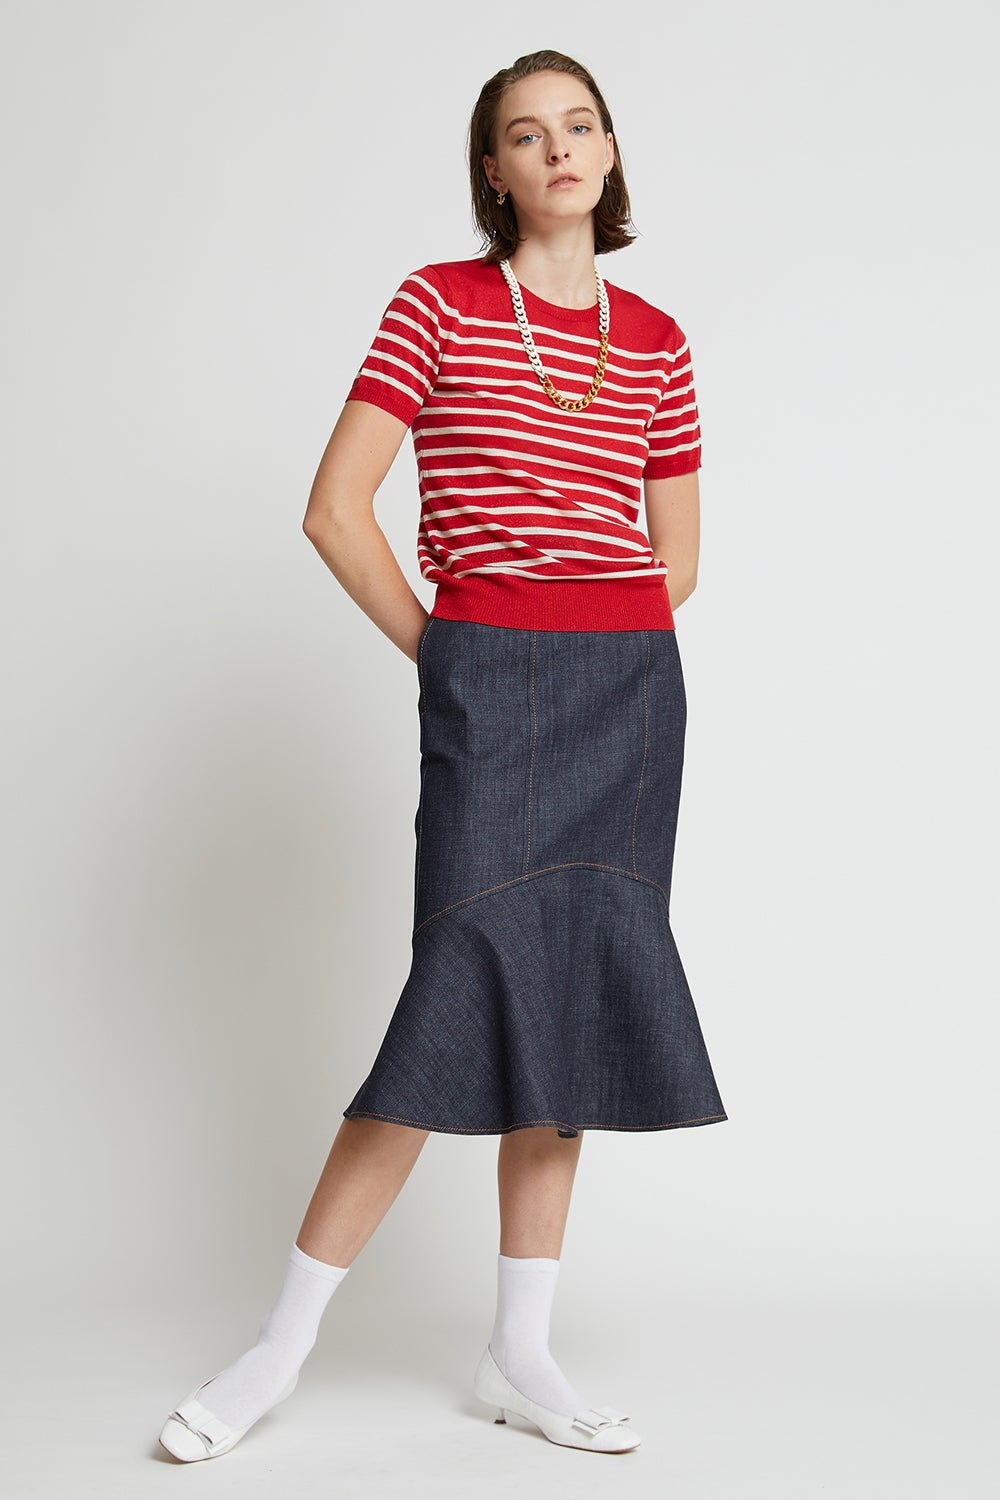 Maritime Knit Tee